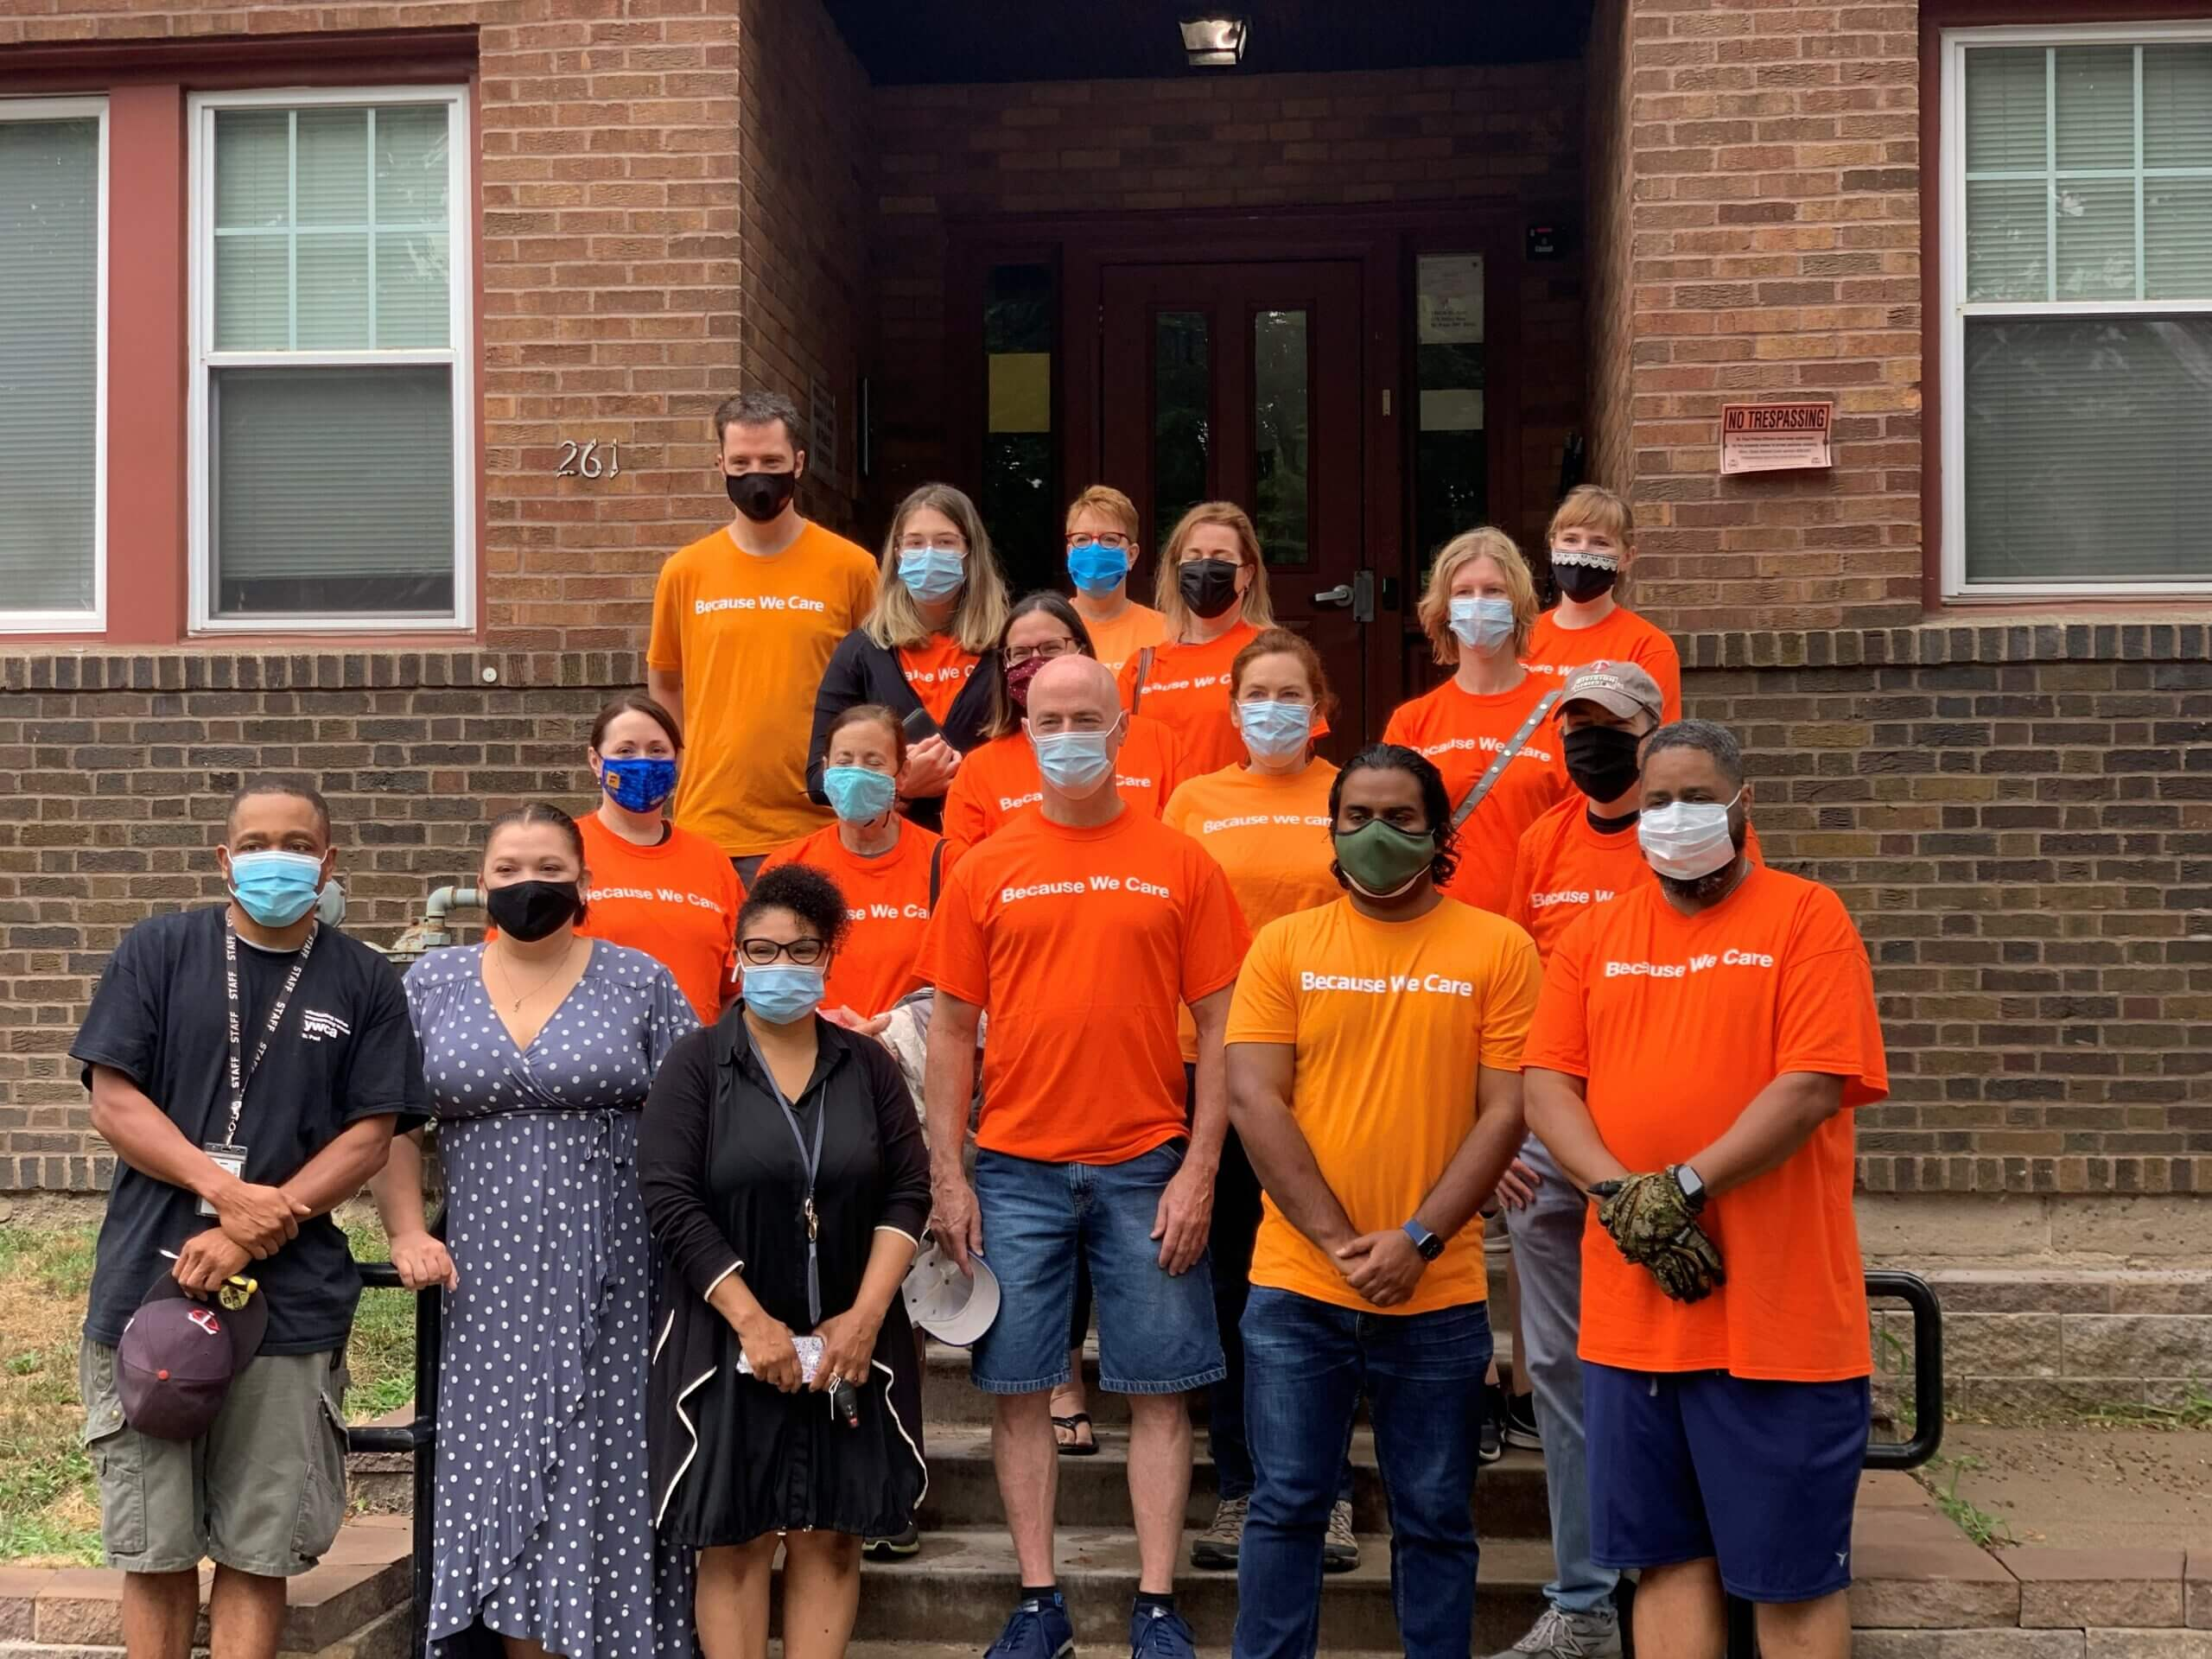 """Group of Thomson Reuters volunteers and YW employees. The group is standing in front of a brick apartment building. Thomson Reuters employees are wearing orange t-shirts that say """"Because We Care"""". Everyone is wearing a mask."""